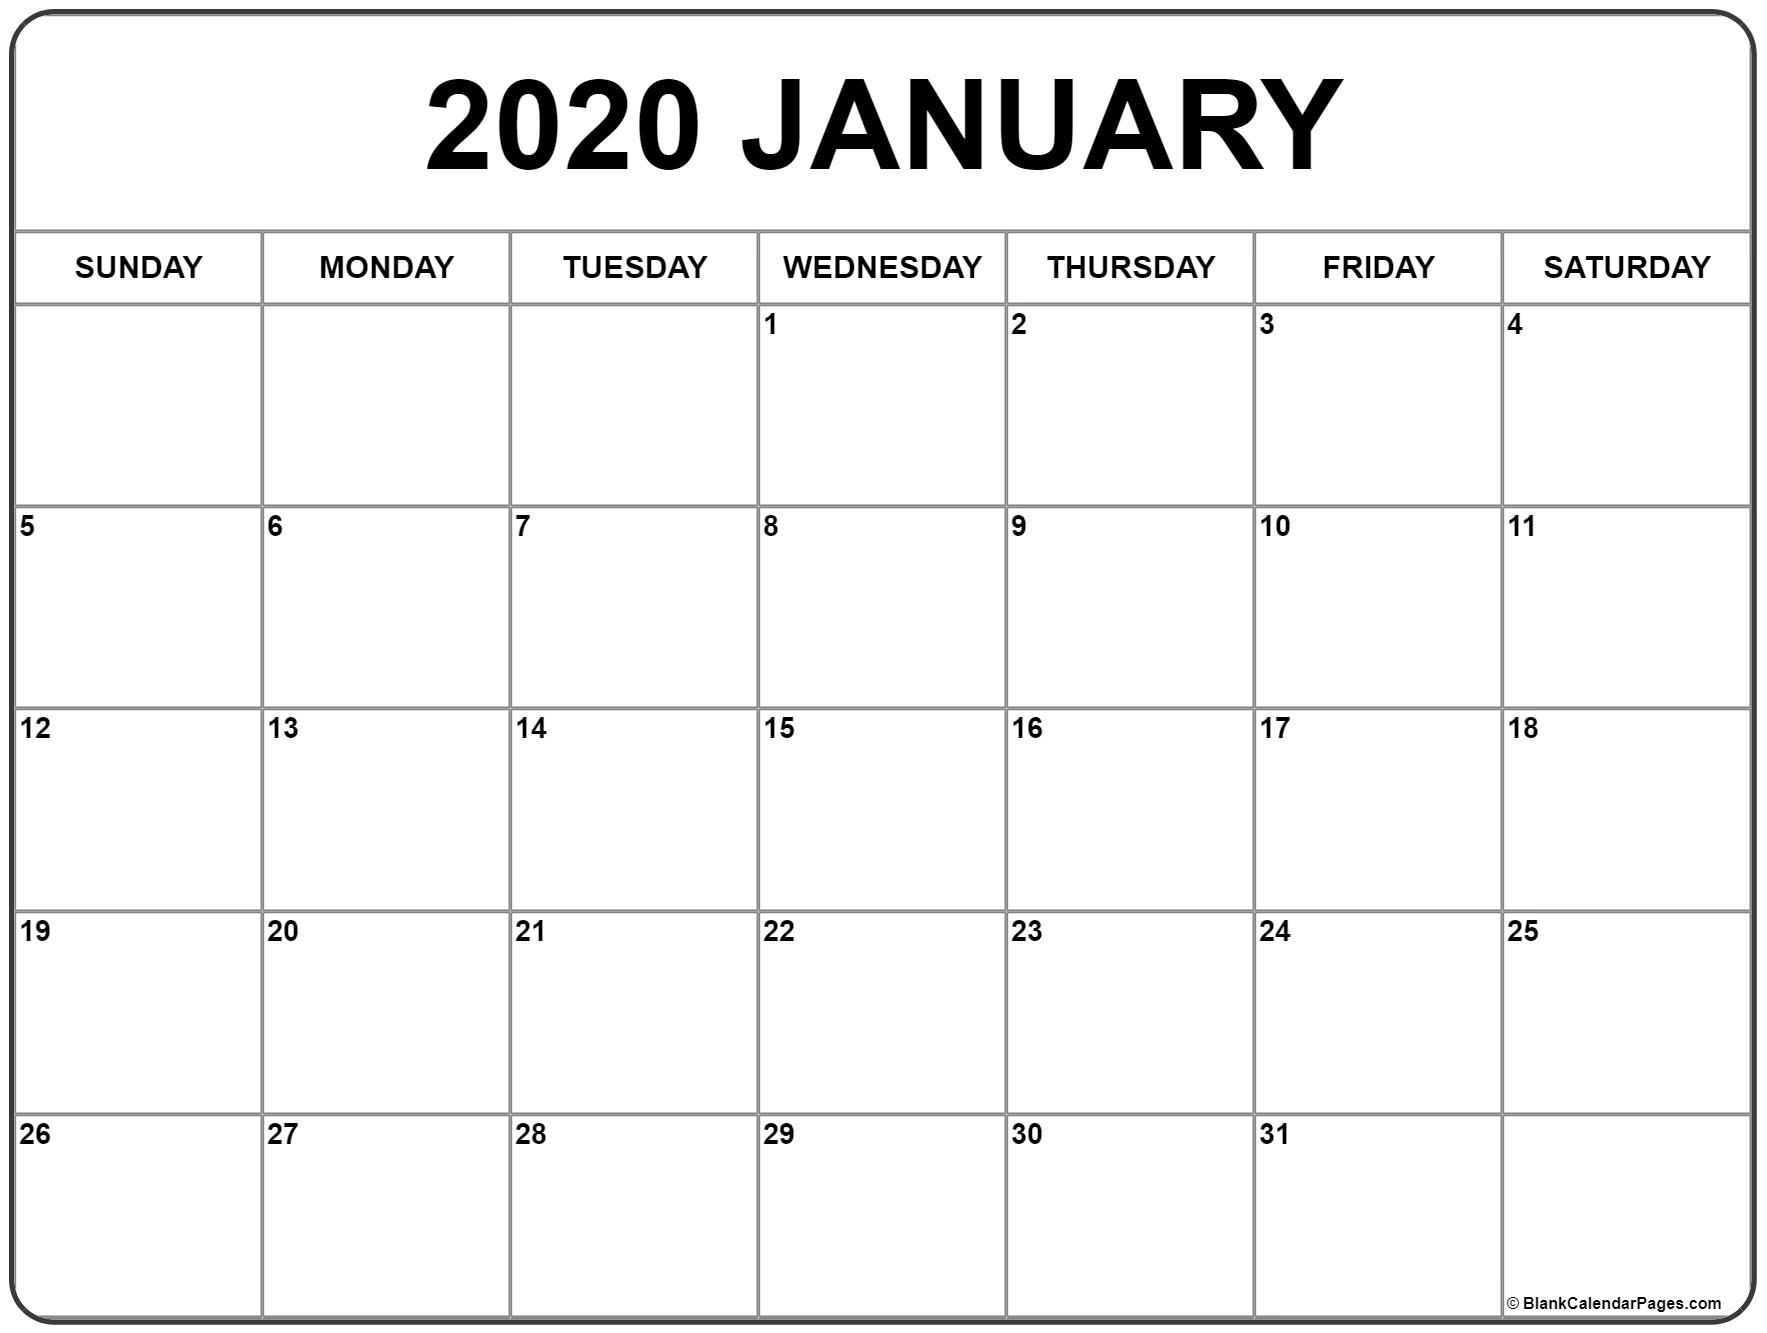 2020 Printable Calendarsmonth - Wpa.wpart.co